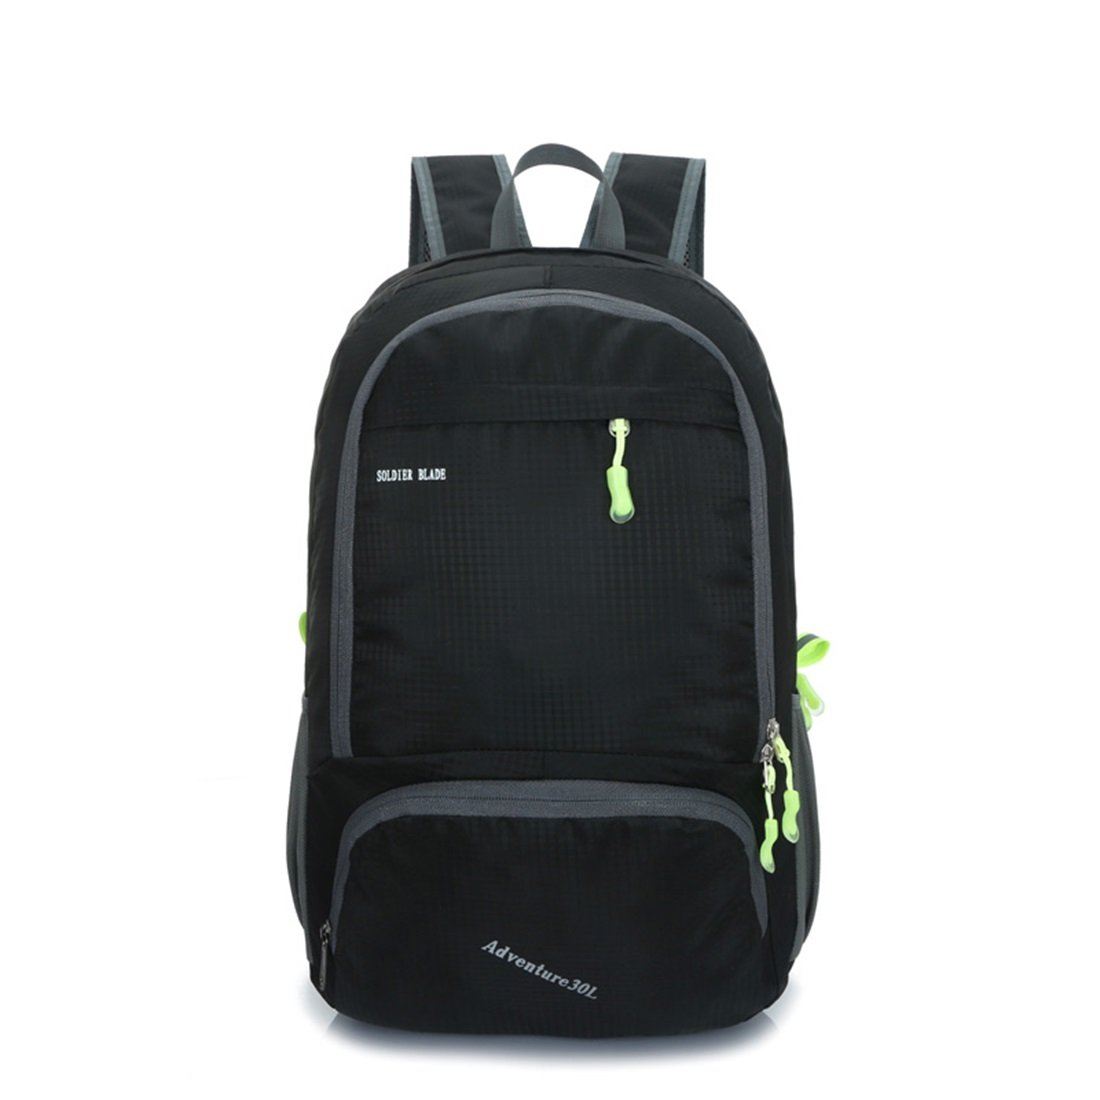 10fb4c6d7909 Amazon.com : LJ Sport Unisex Outdoor Foldable Backpack Waterproof ...